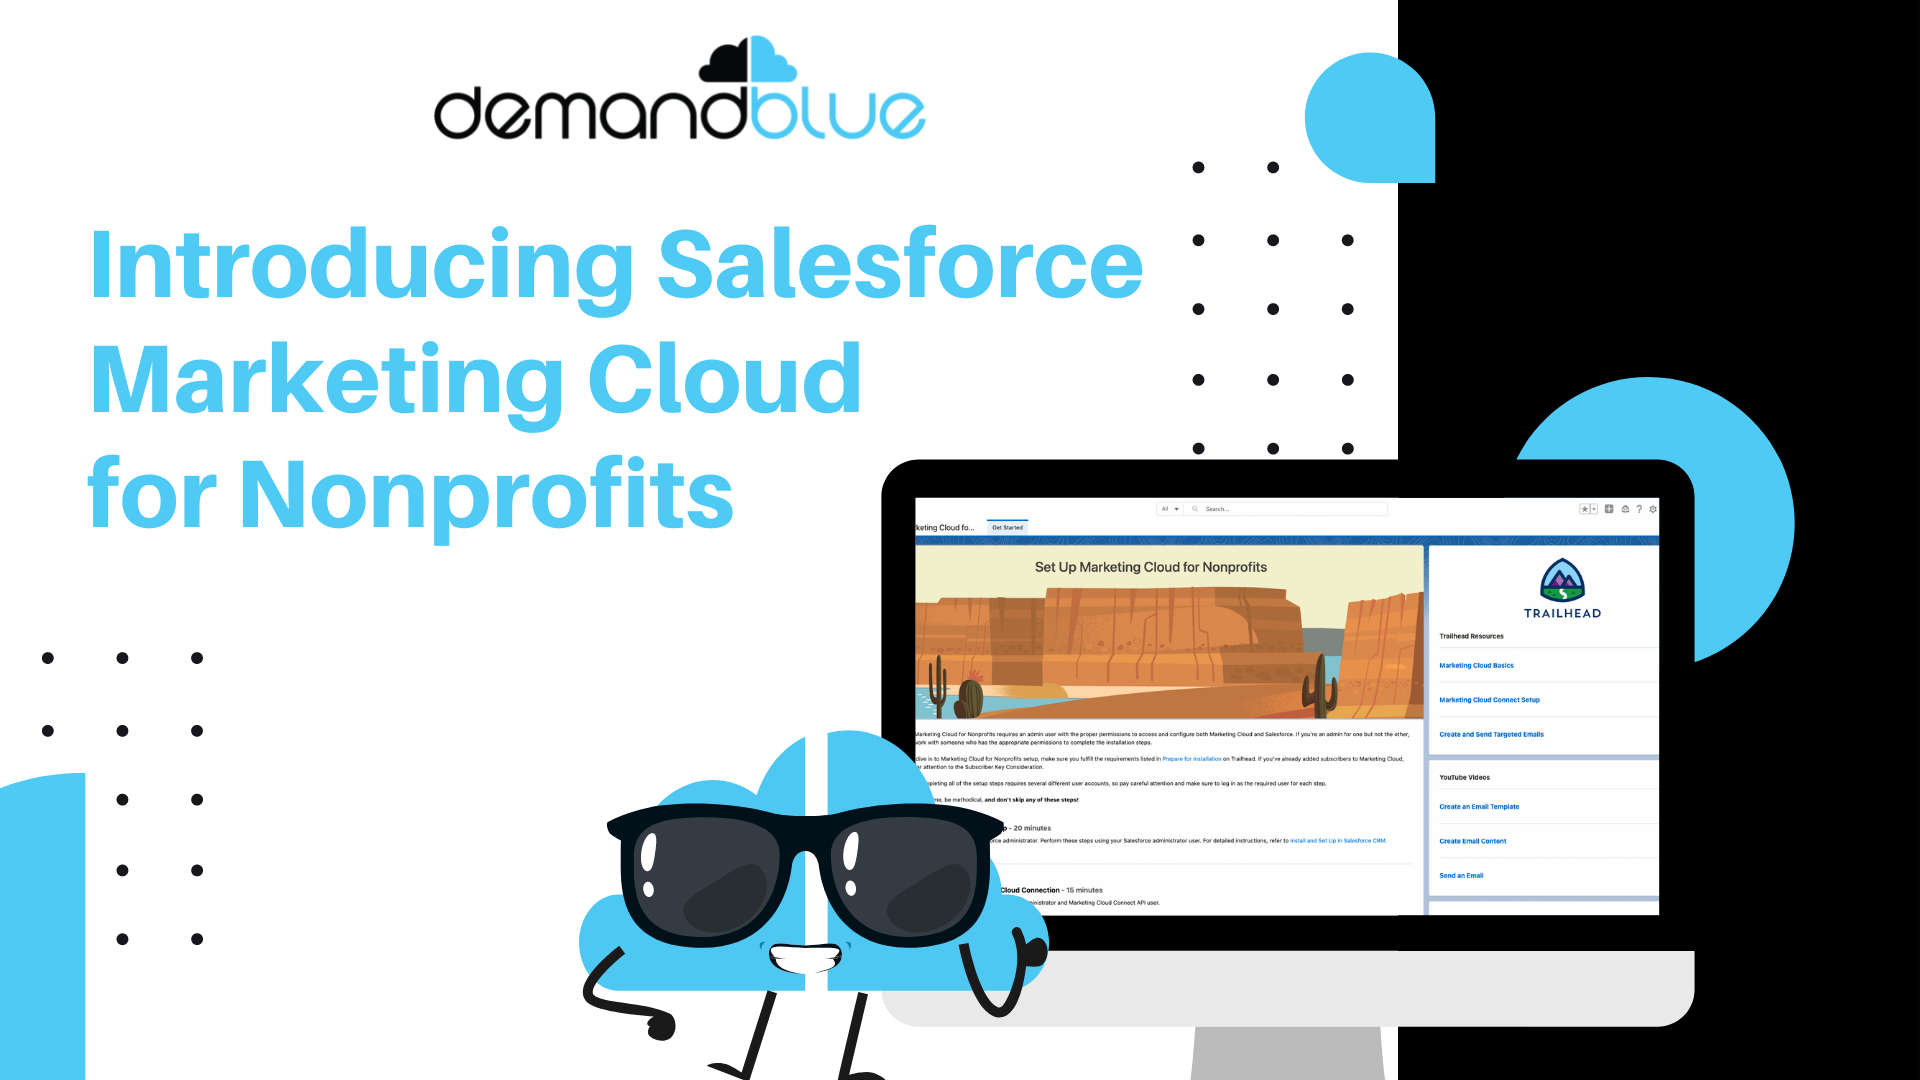 We're so excited to share the next big step to ensure nonprofits get the most out of Salesforce!